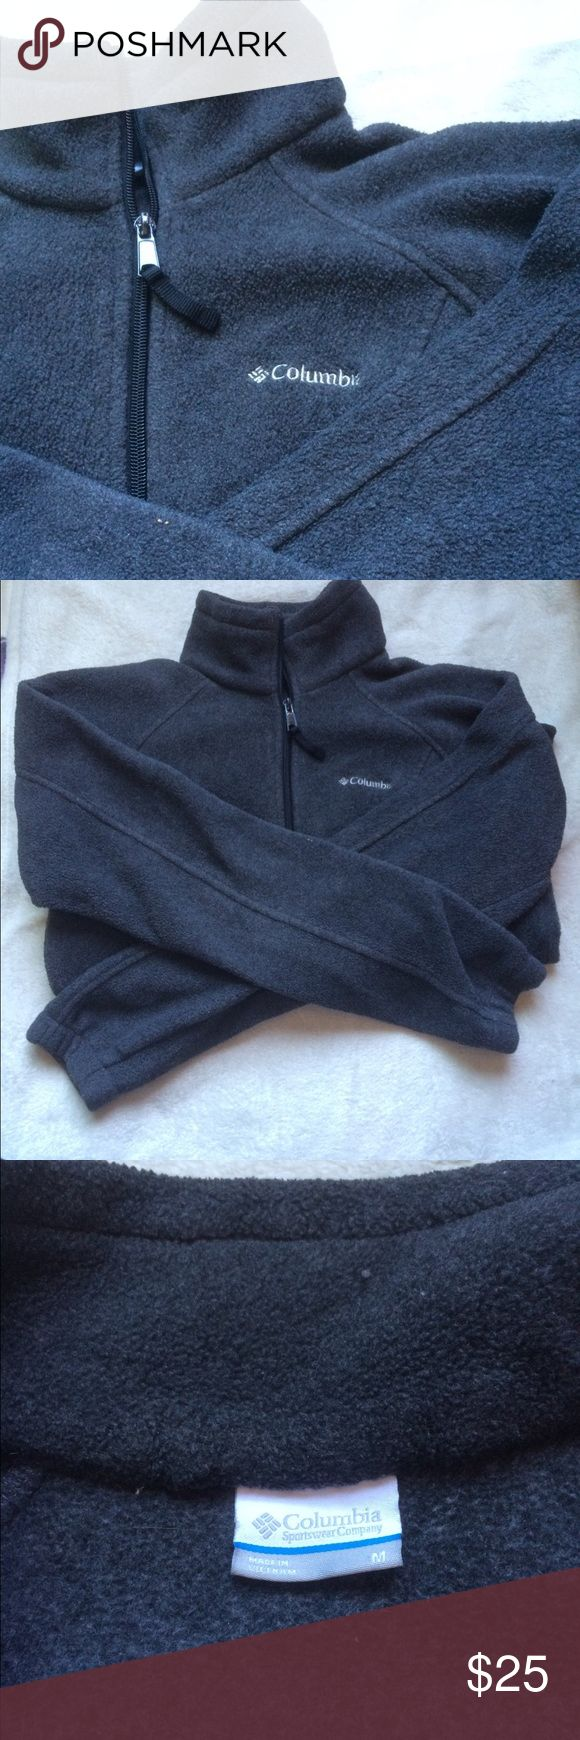 Gray Colombia Jacket Gray fleece jacket, has a full zipper. Looks brand new and in great condition! Colombia Jackets & Coats